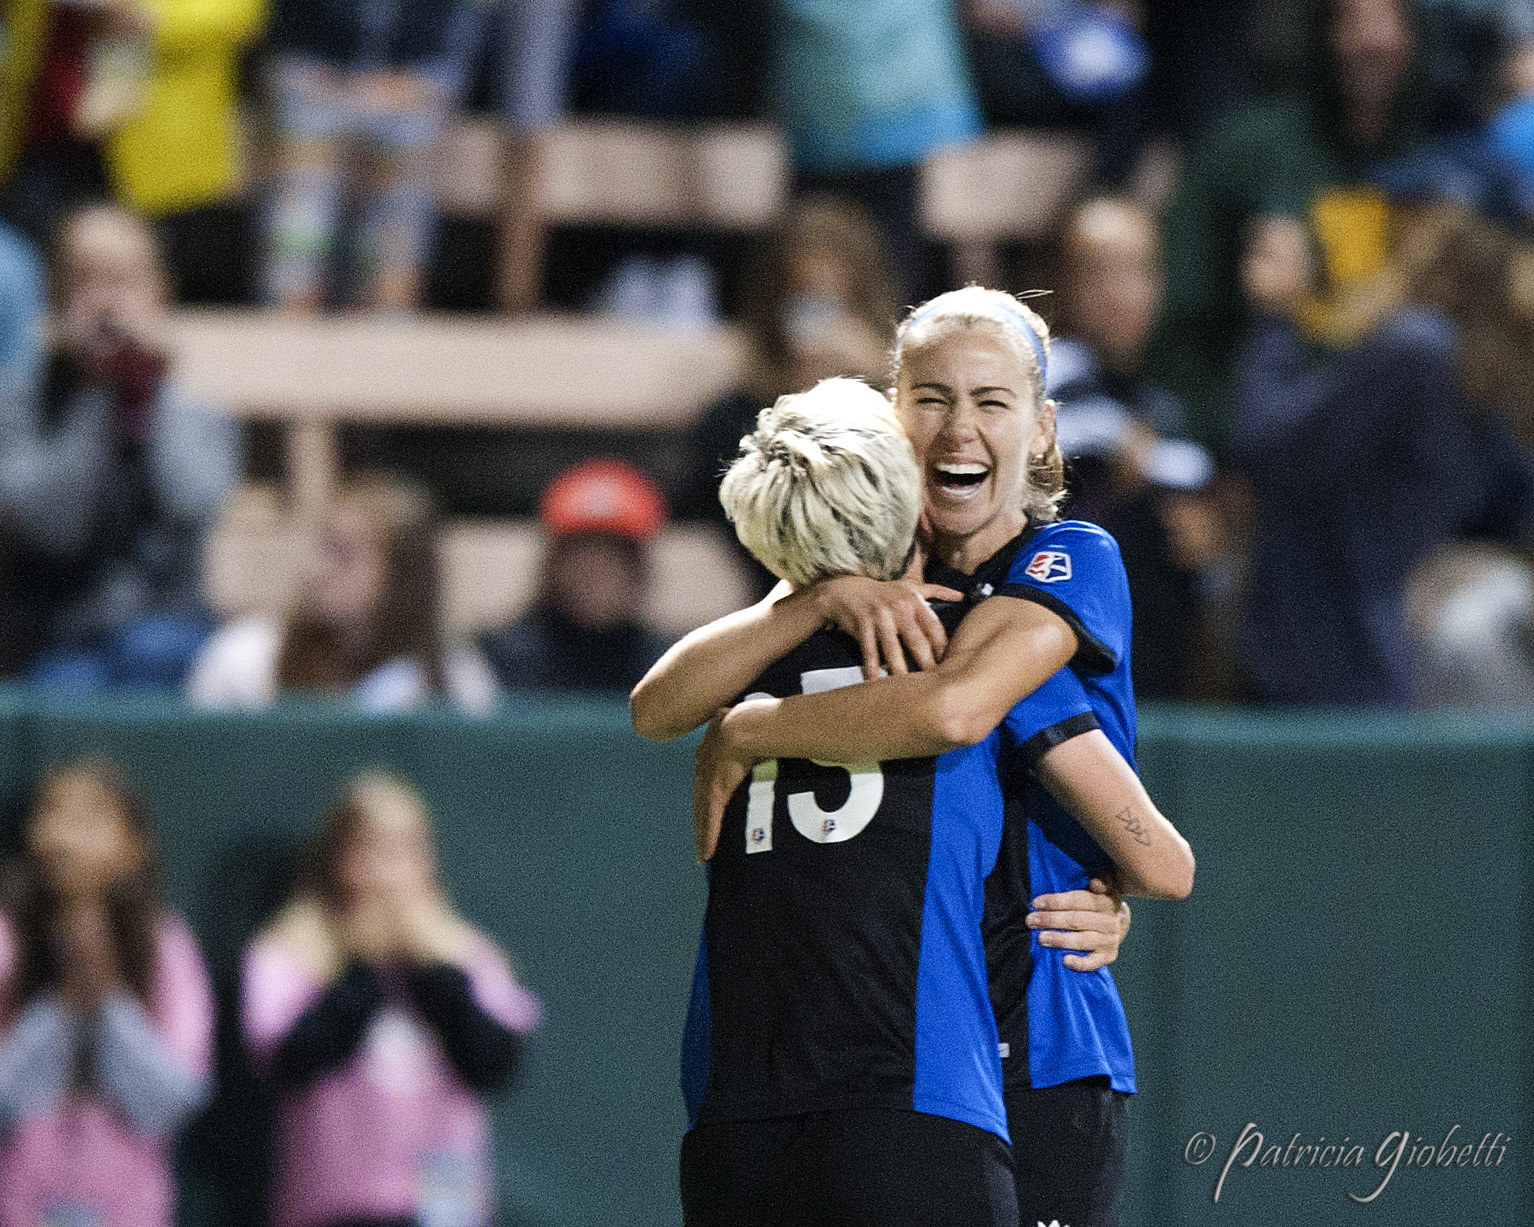 Beverly Yanez and Megan Rapinoe both scored in the Reign's semifinal win over the Spirit. (Photo Copyright Patricia Giobetti for The Equalizer)